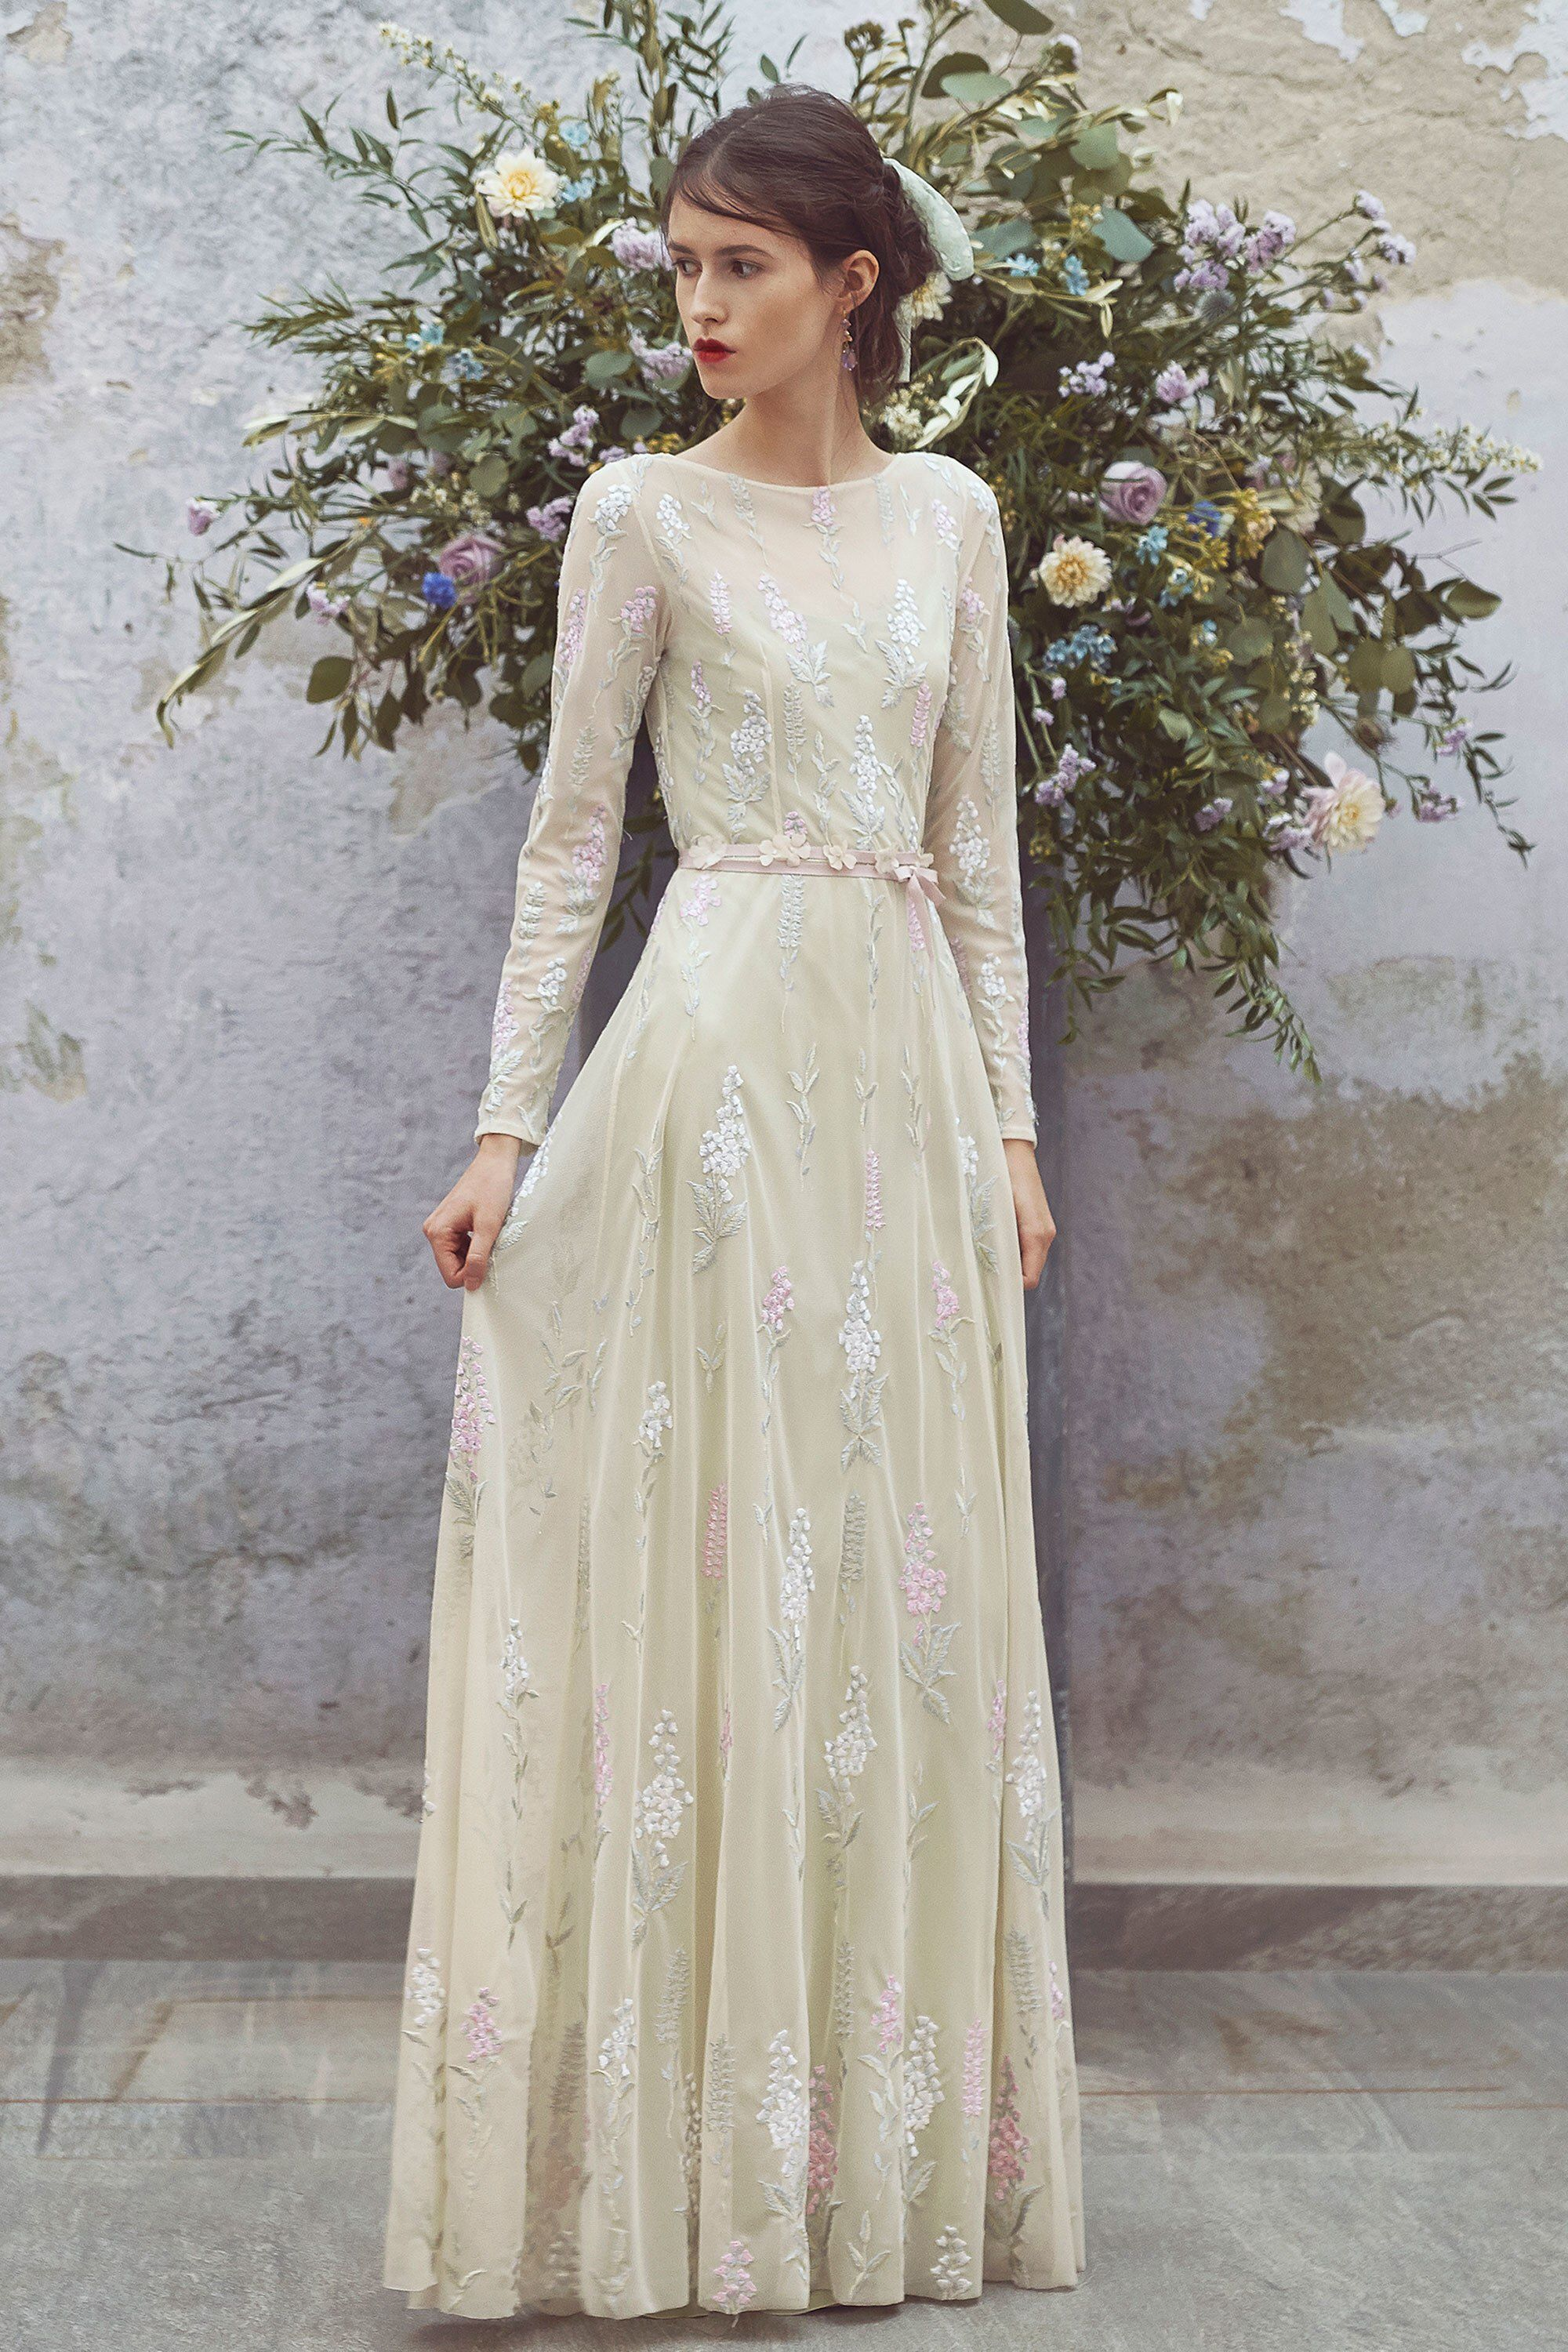 Luisa Beccaria Resort 2018 Fashion Show Dresses, Gowns